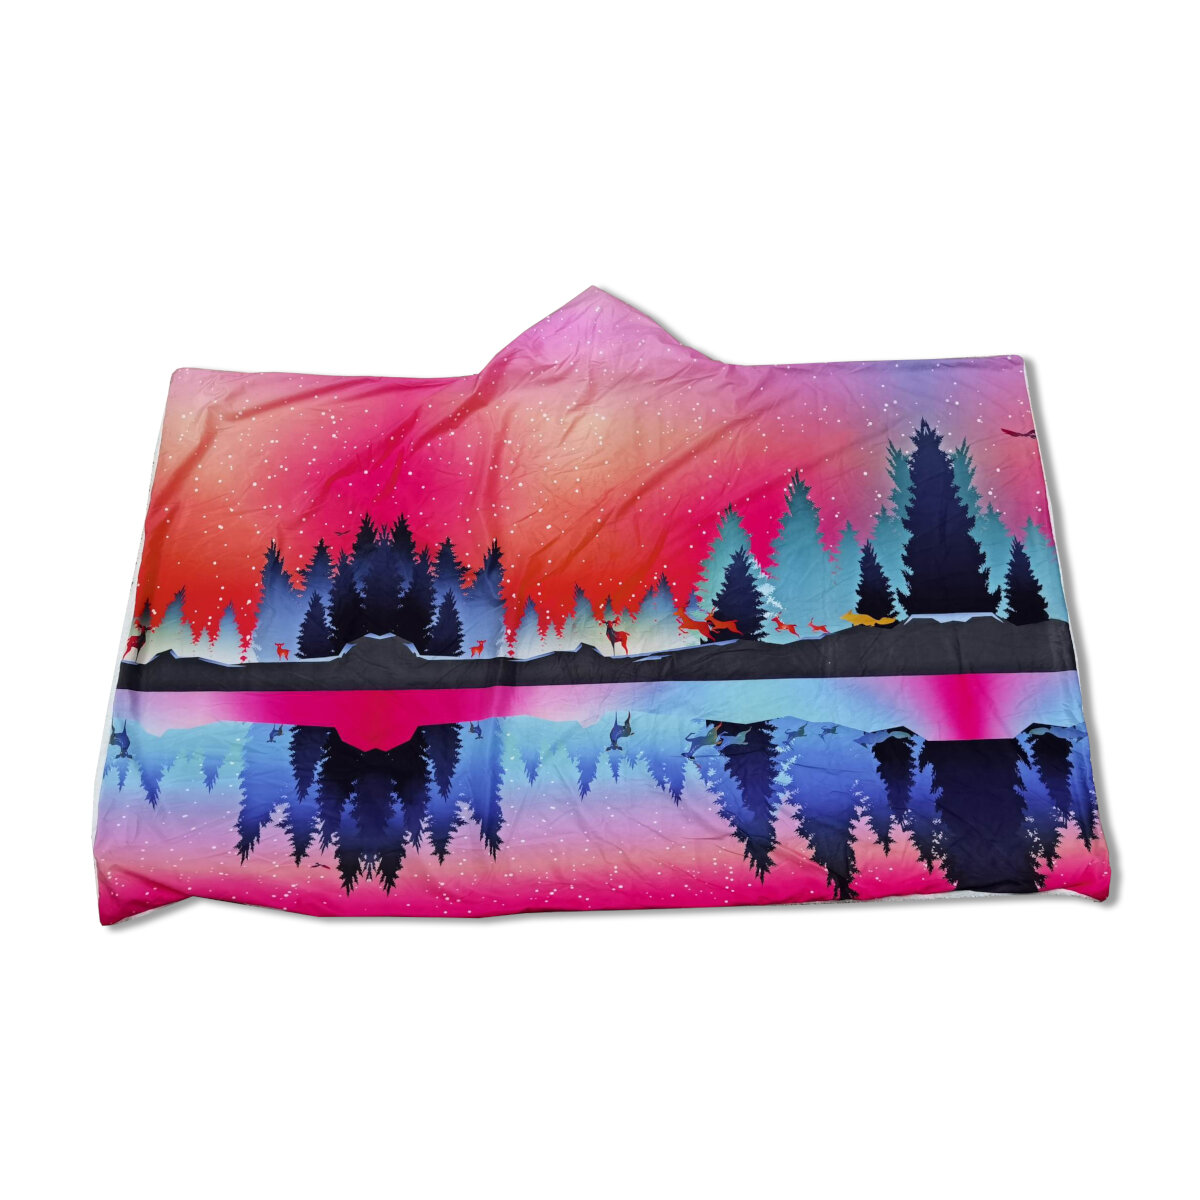 Wander-Outdoors-Hoodie-Throw-Blanket-Main-Image